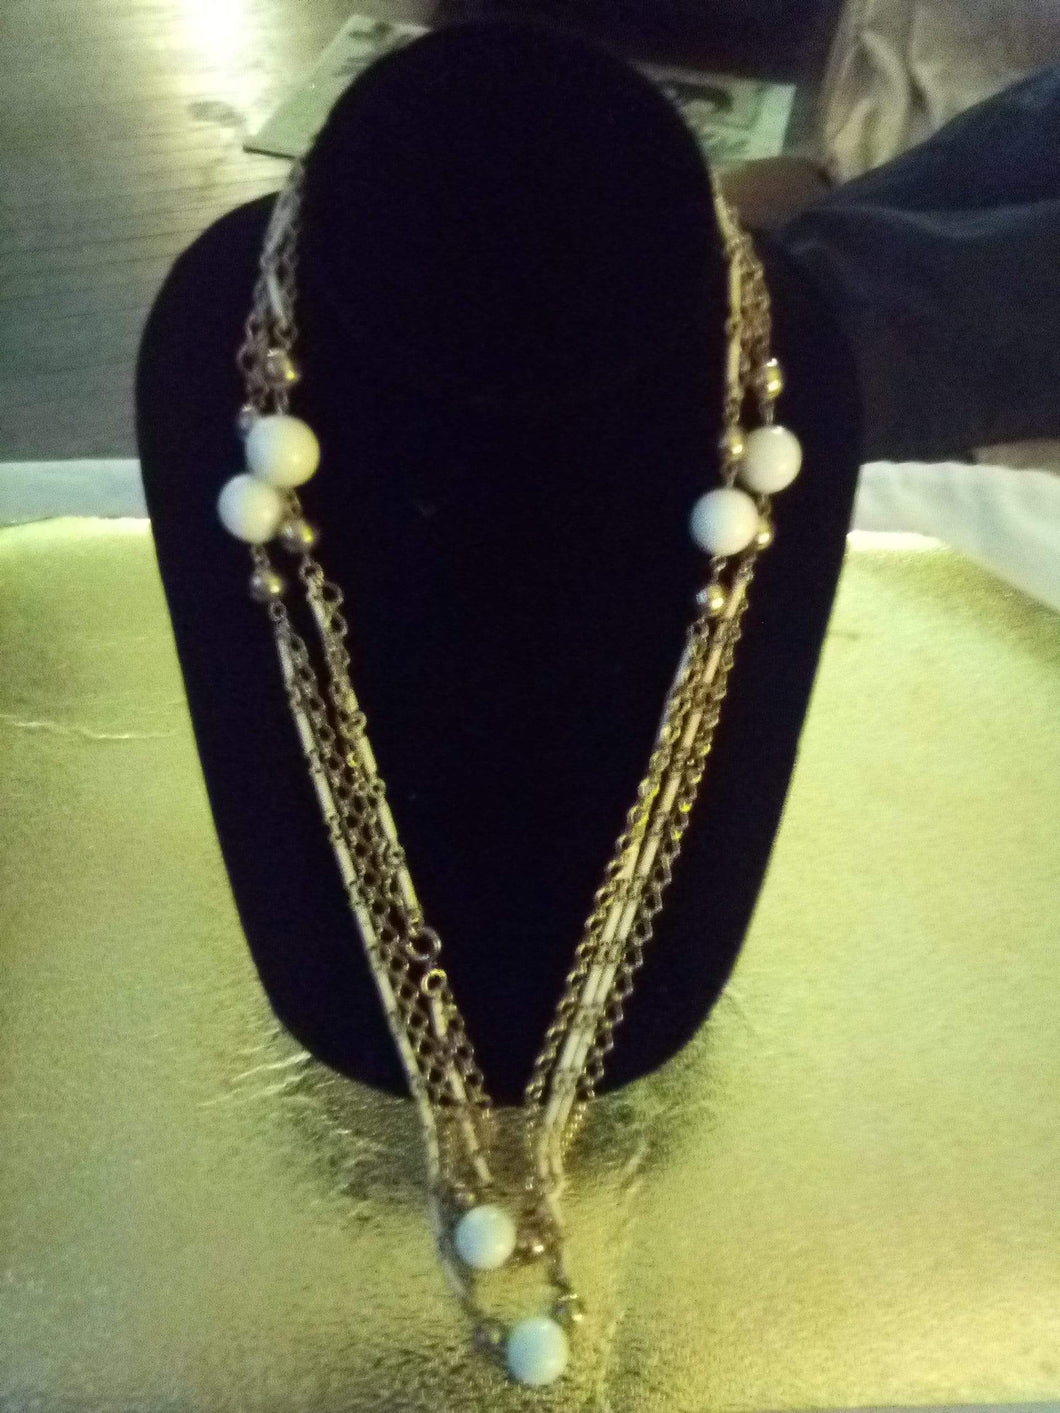 Dressy long white beaded chained necklace - B&P'sringsnthings